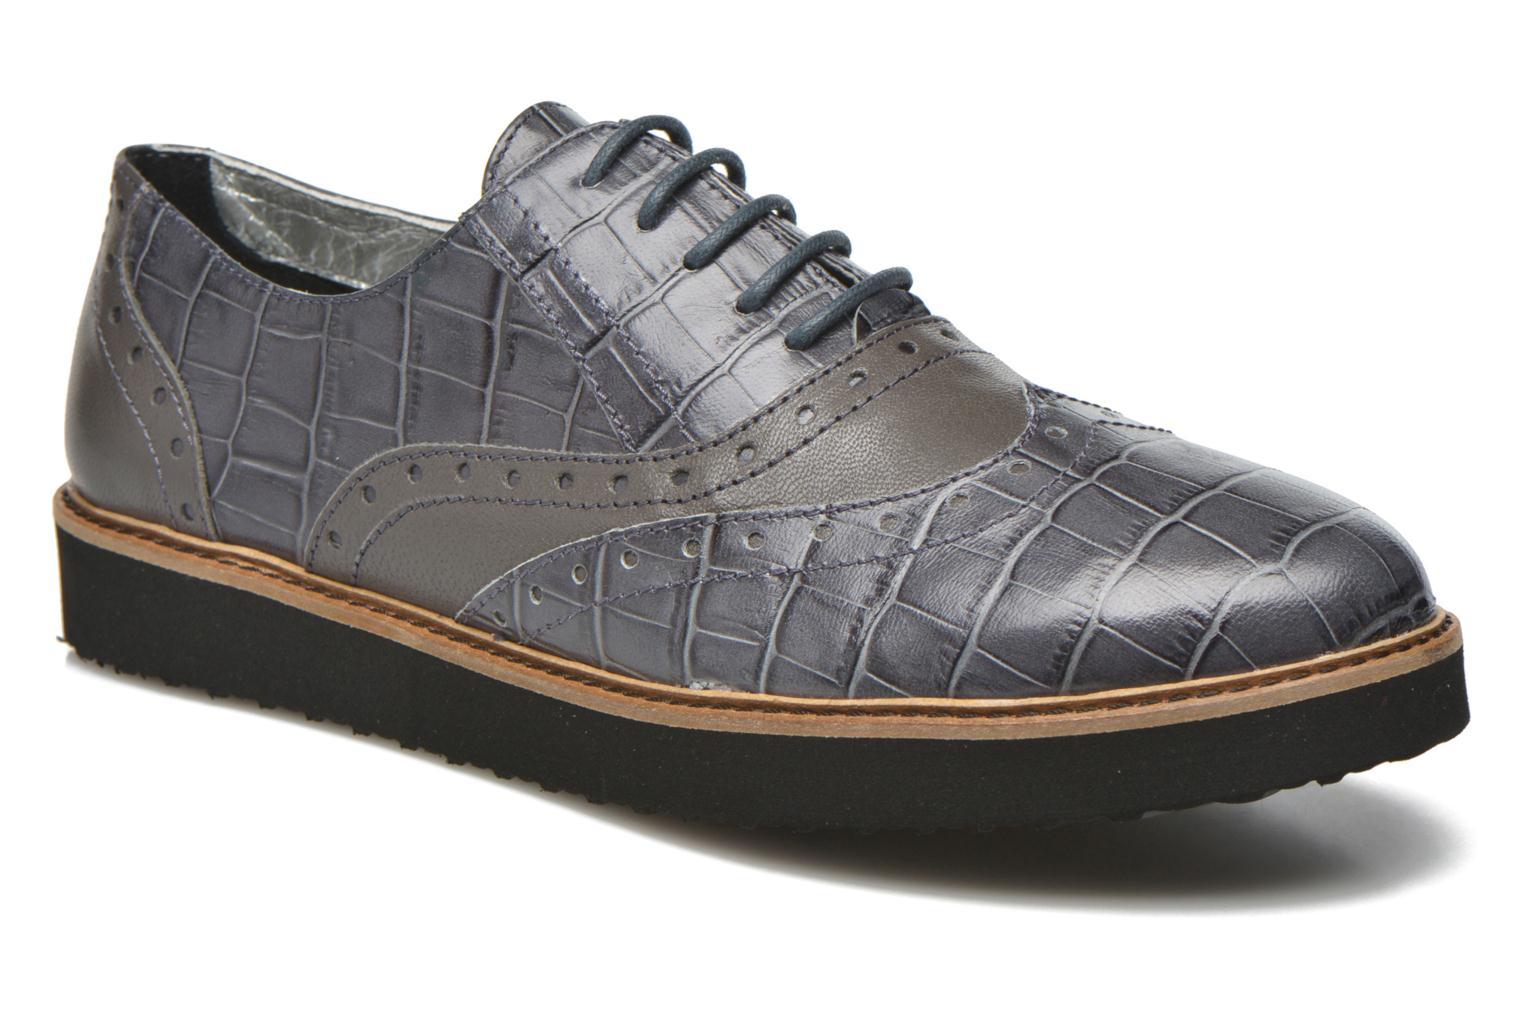 Andy croco by Ippon VintageRebajas - 30%